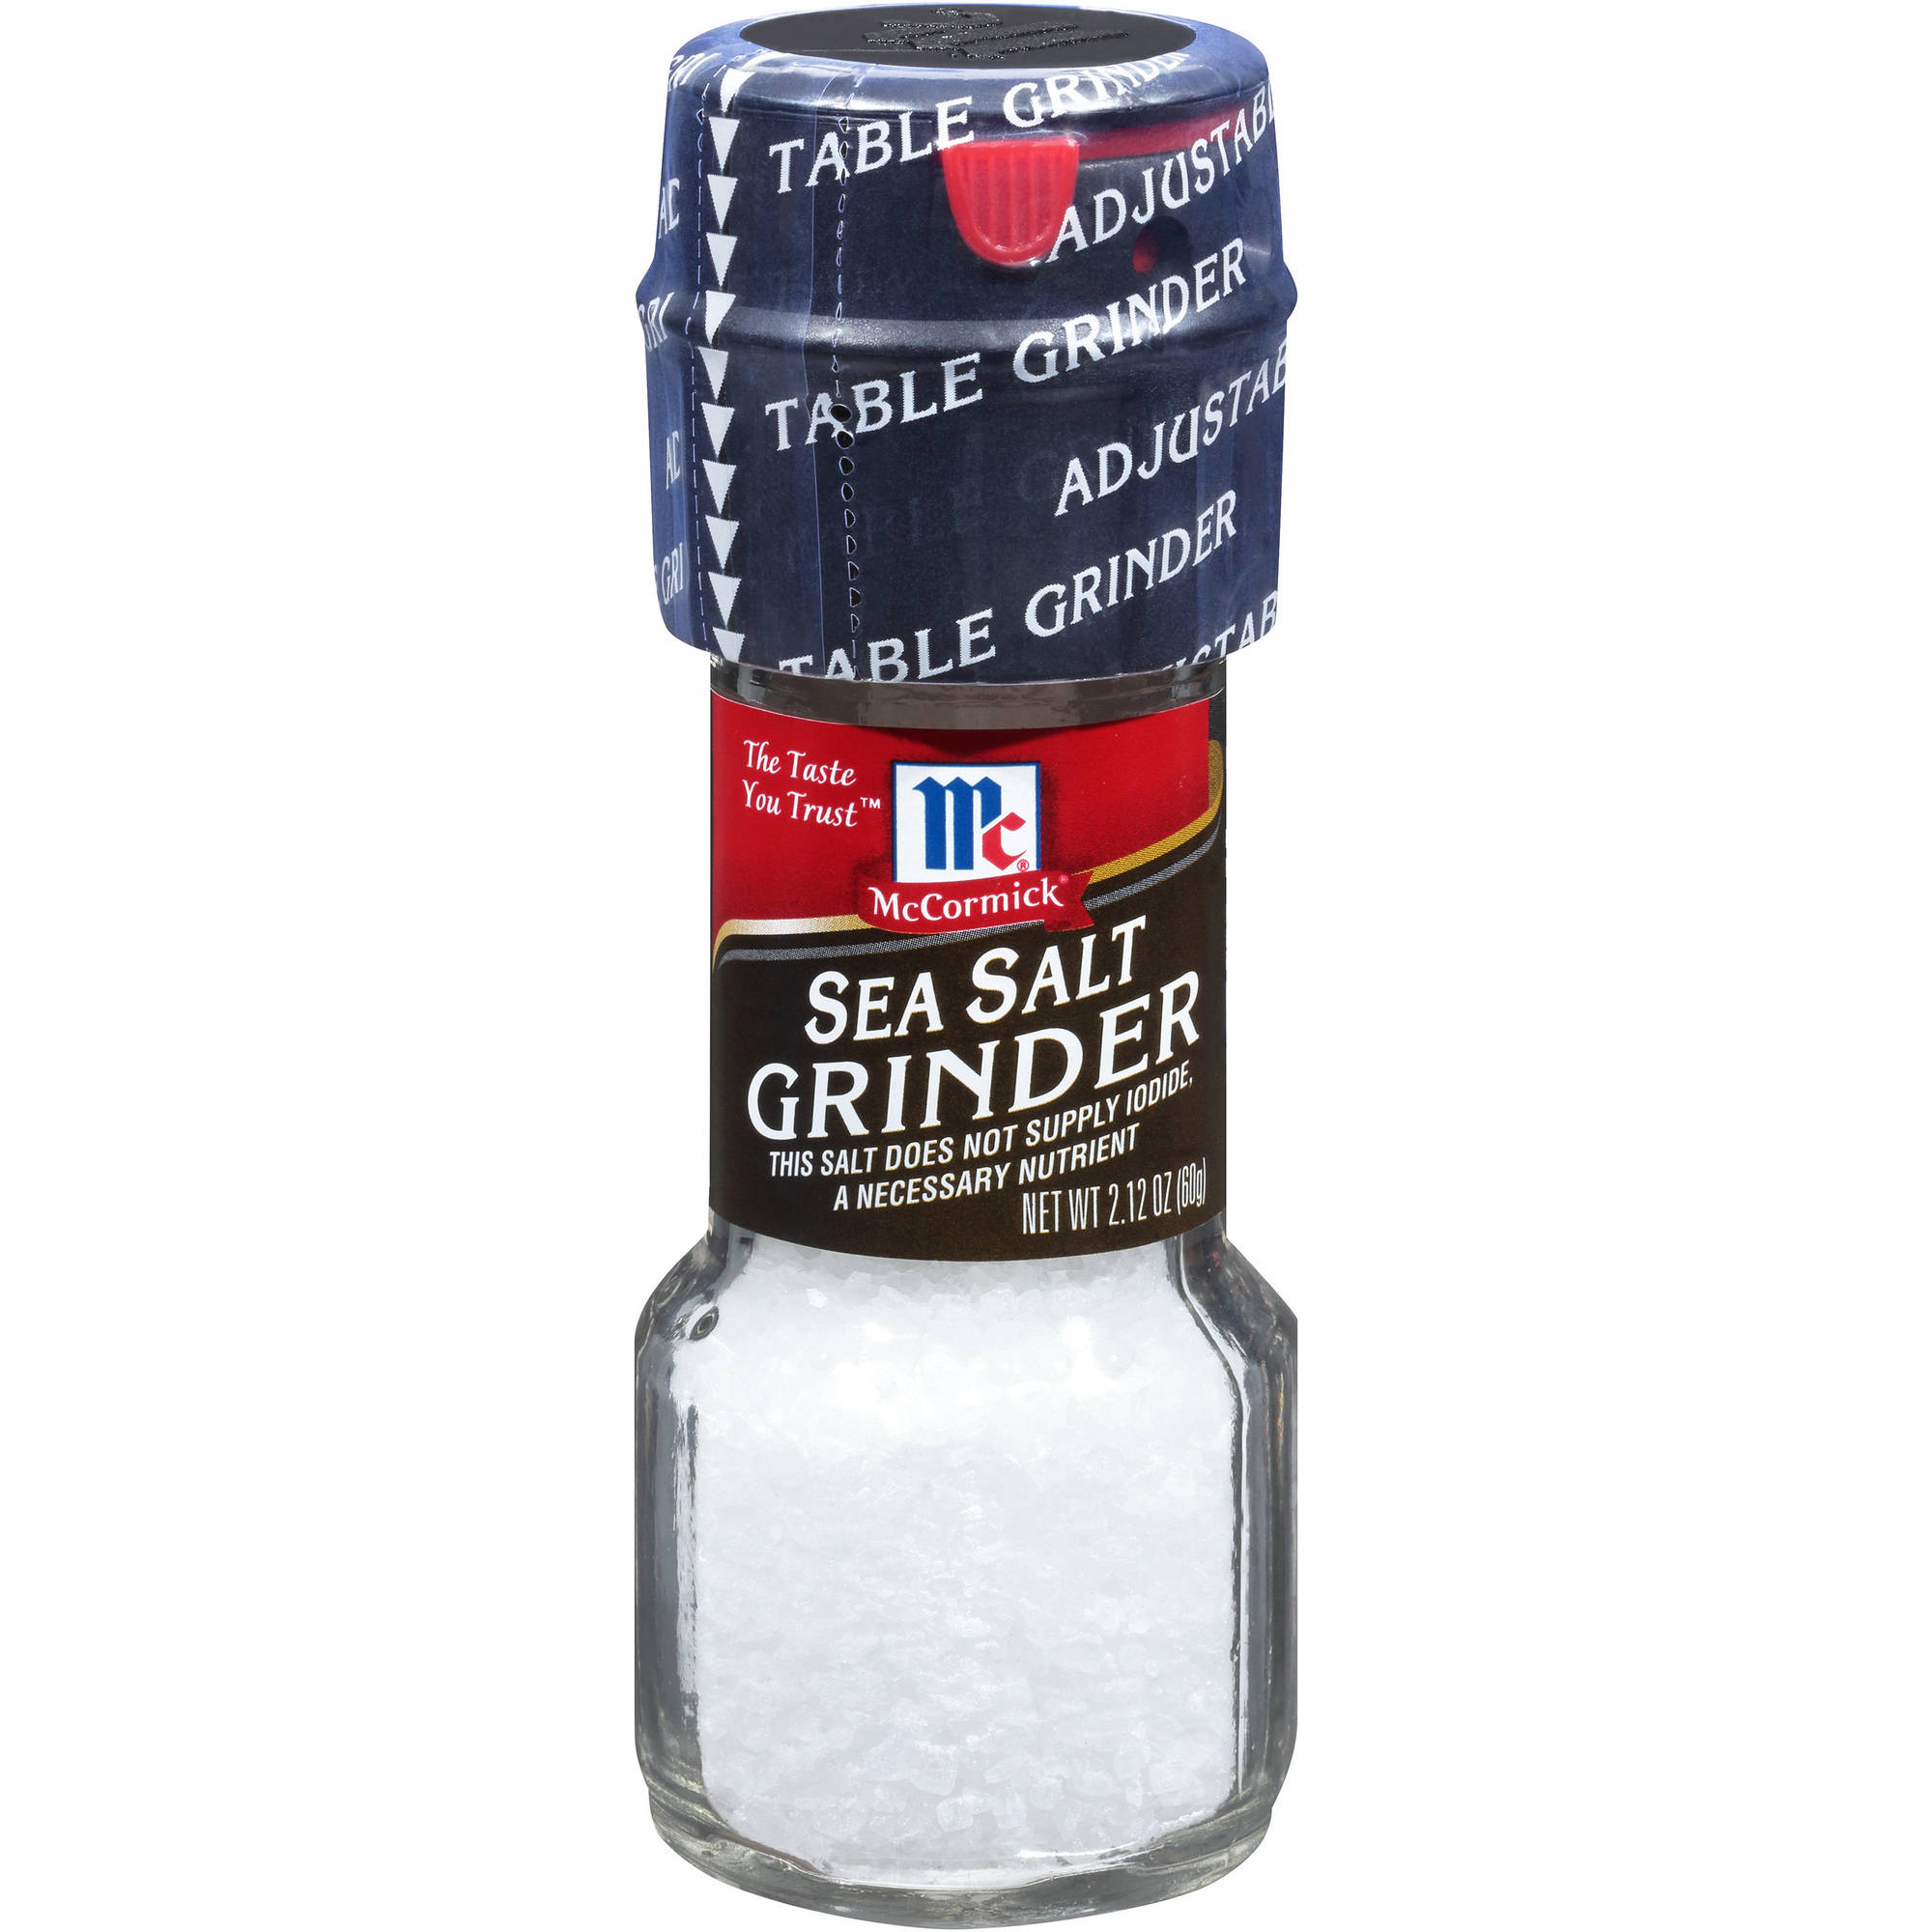 McCormick Sea Salt Grinder, 2.12 oz